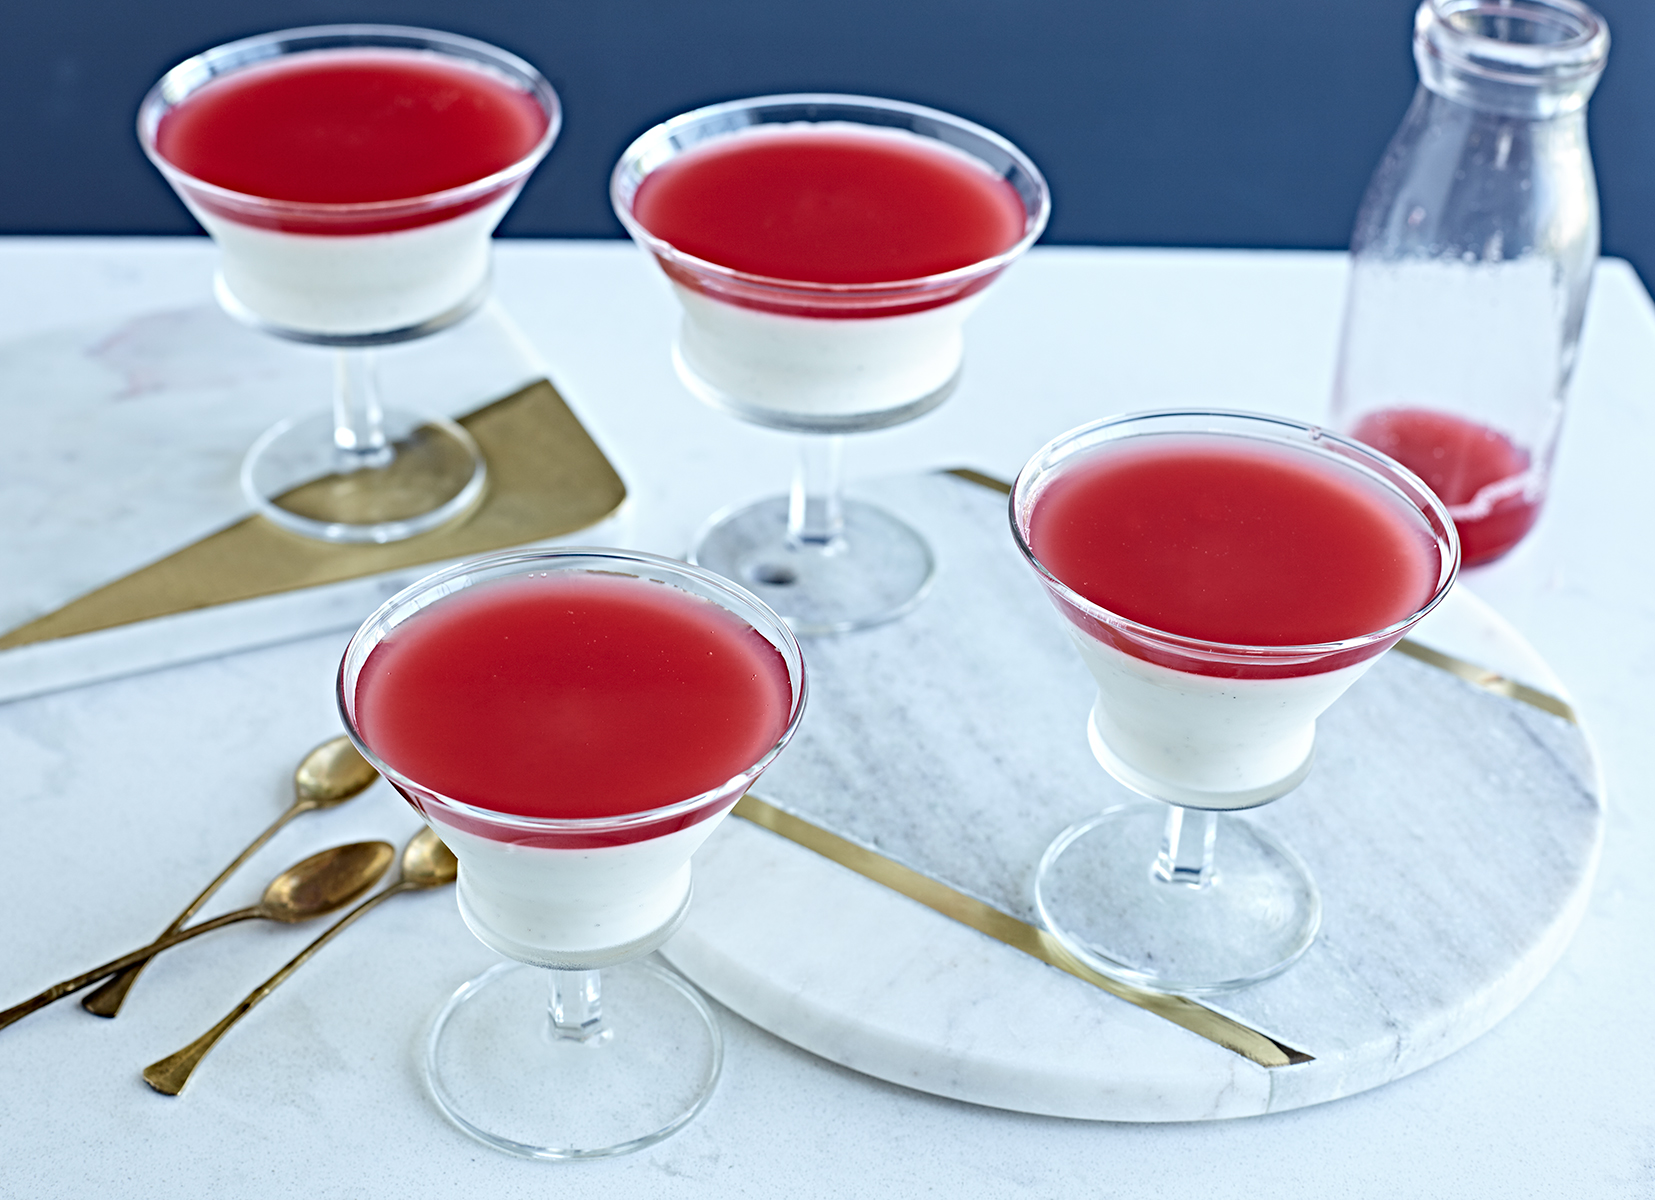 Fancy glasses of yogurt panna cotta with rhubarb syrup and gold spoons.